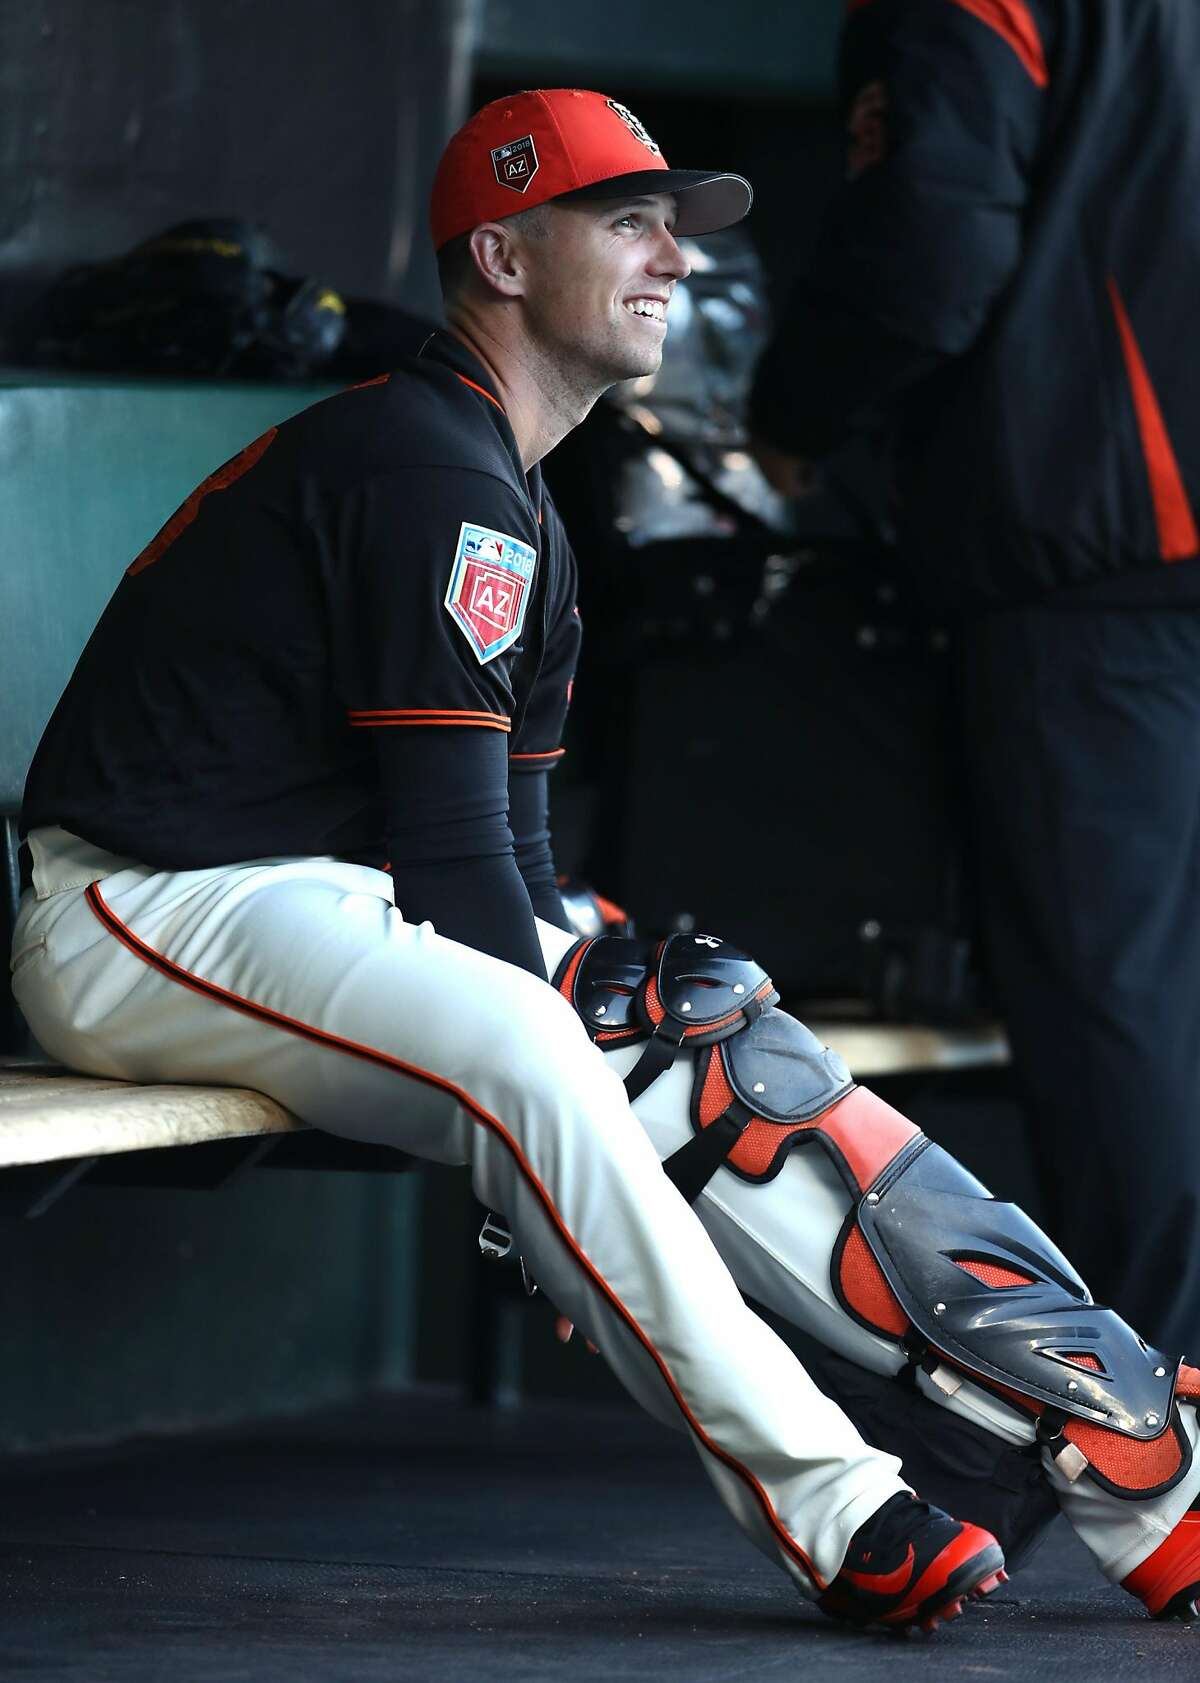 San Francisco Giants' Buster Posey before playing Oakland Athletics during Bay Bridge Series game at AT&T Park in San Francisco, Calif., on Monday, March 26, 2018.